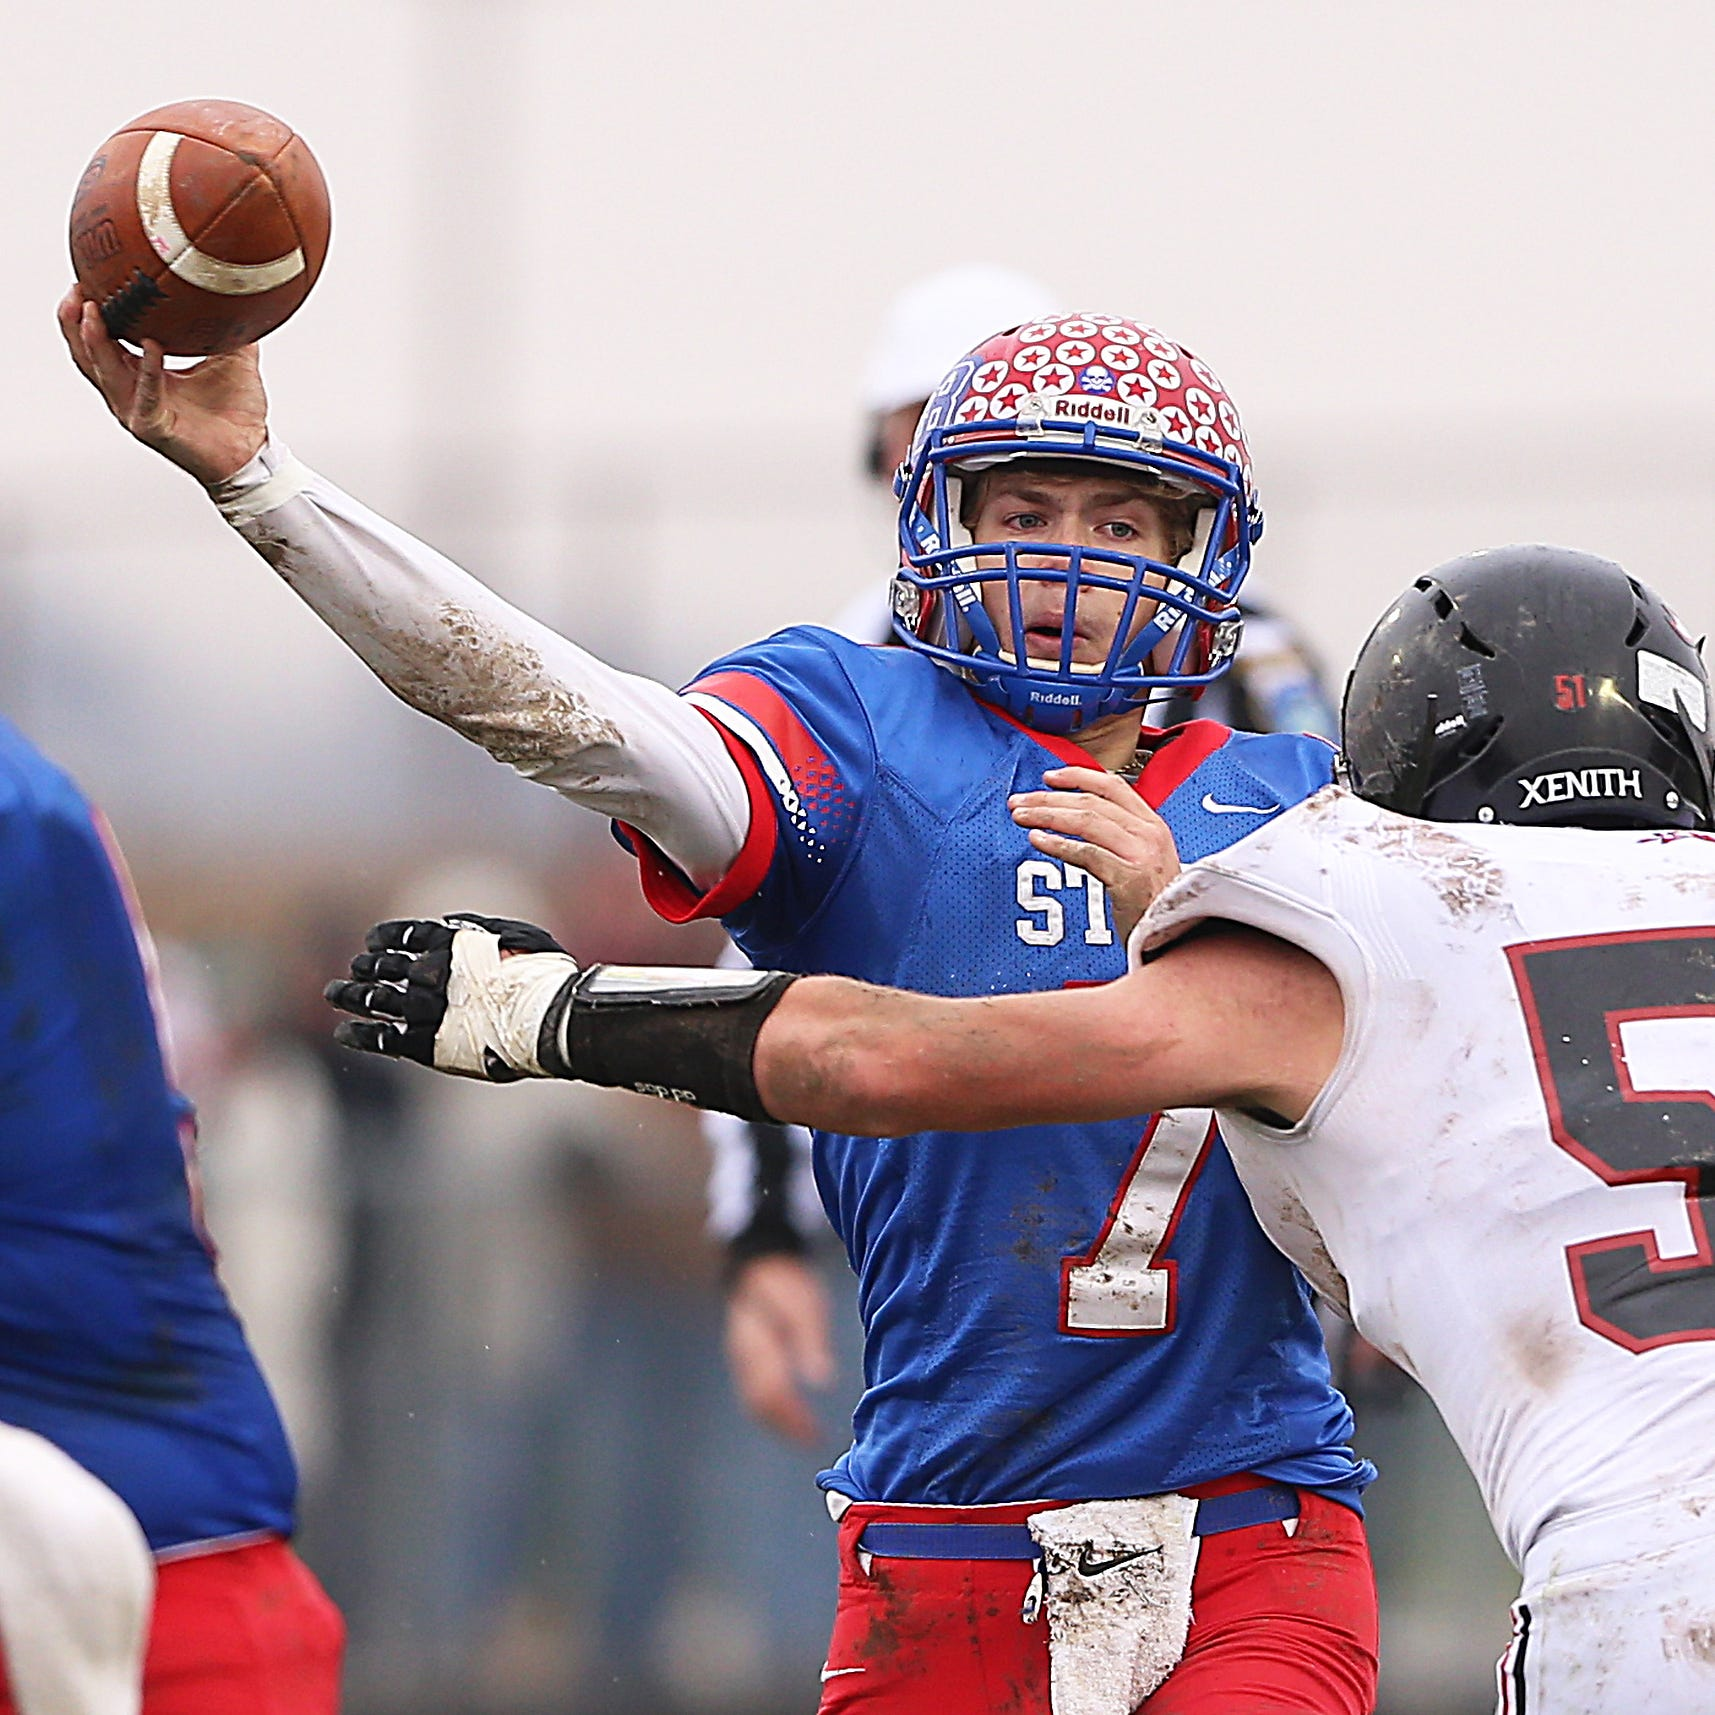 Western Boone Star Spencer Wright (7) gets the ball out the pocket against Southridge Raider Conner Oxley (51) in the second half of the IHSAA Class 2A semi-state final game at Western Boone High School in Thorntown, Ind., Saturday, Nov. 17, 2018. Western Boone defeated Southridge 48-7.